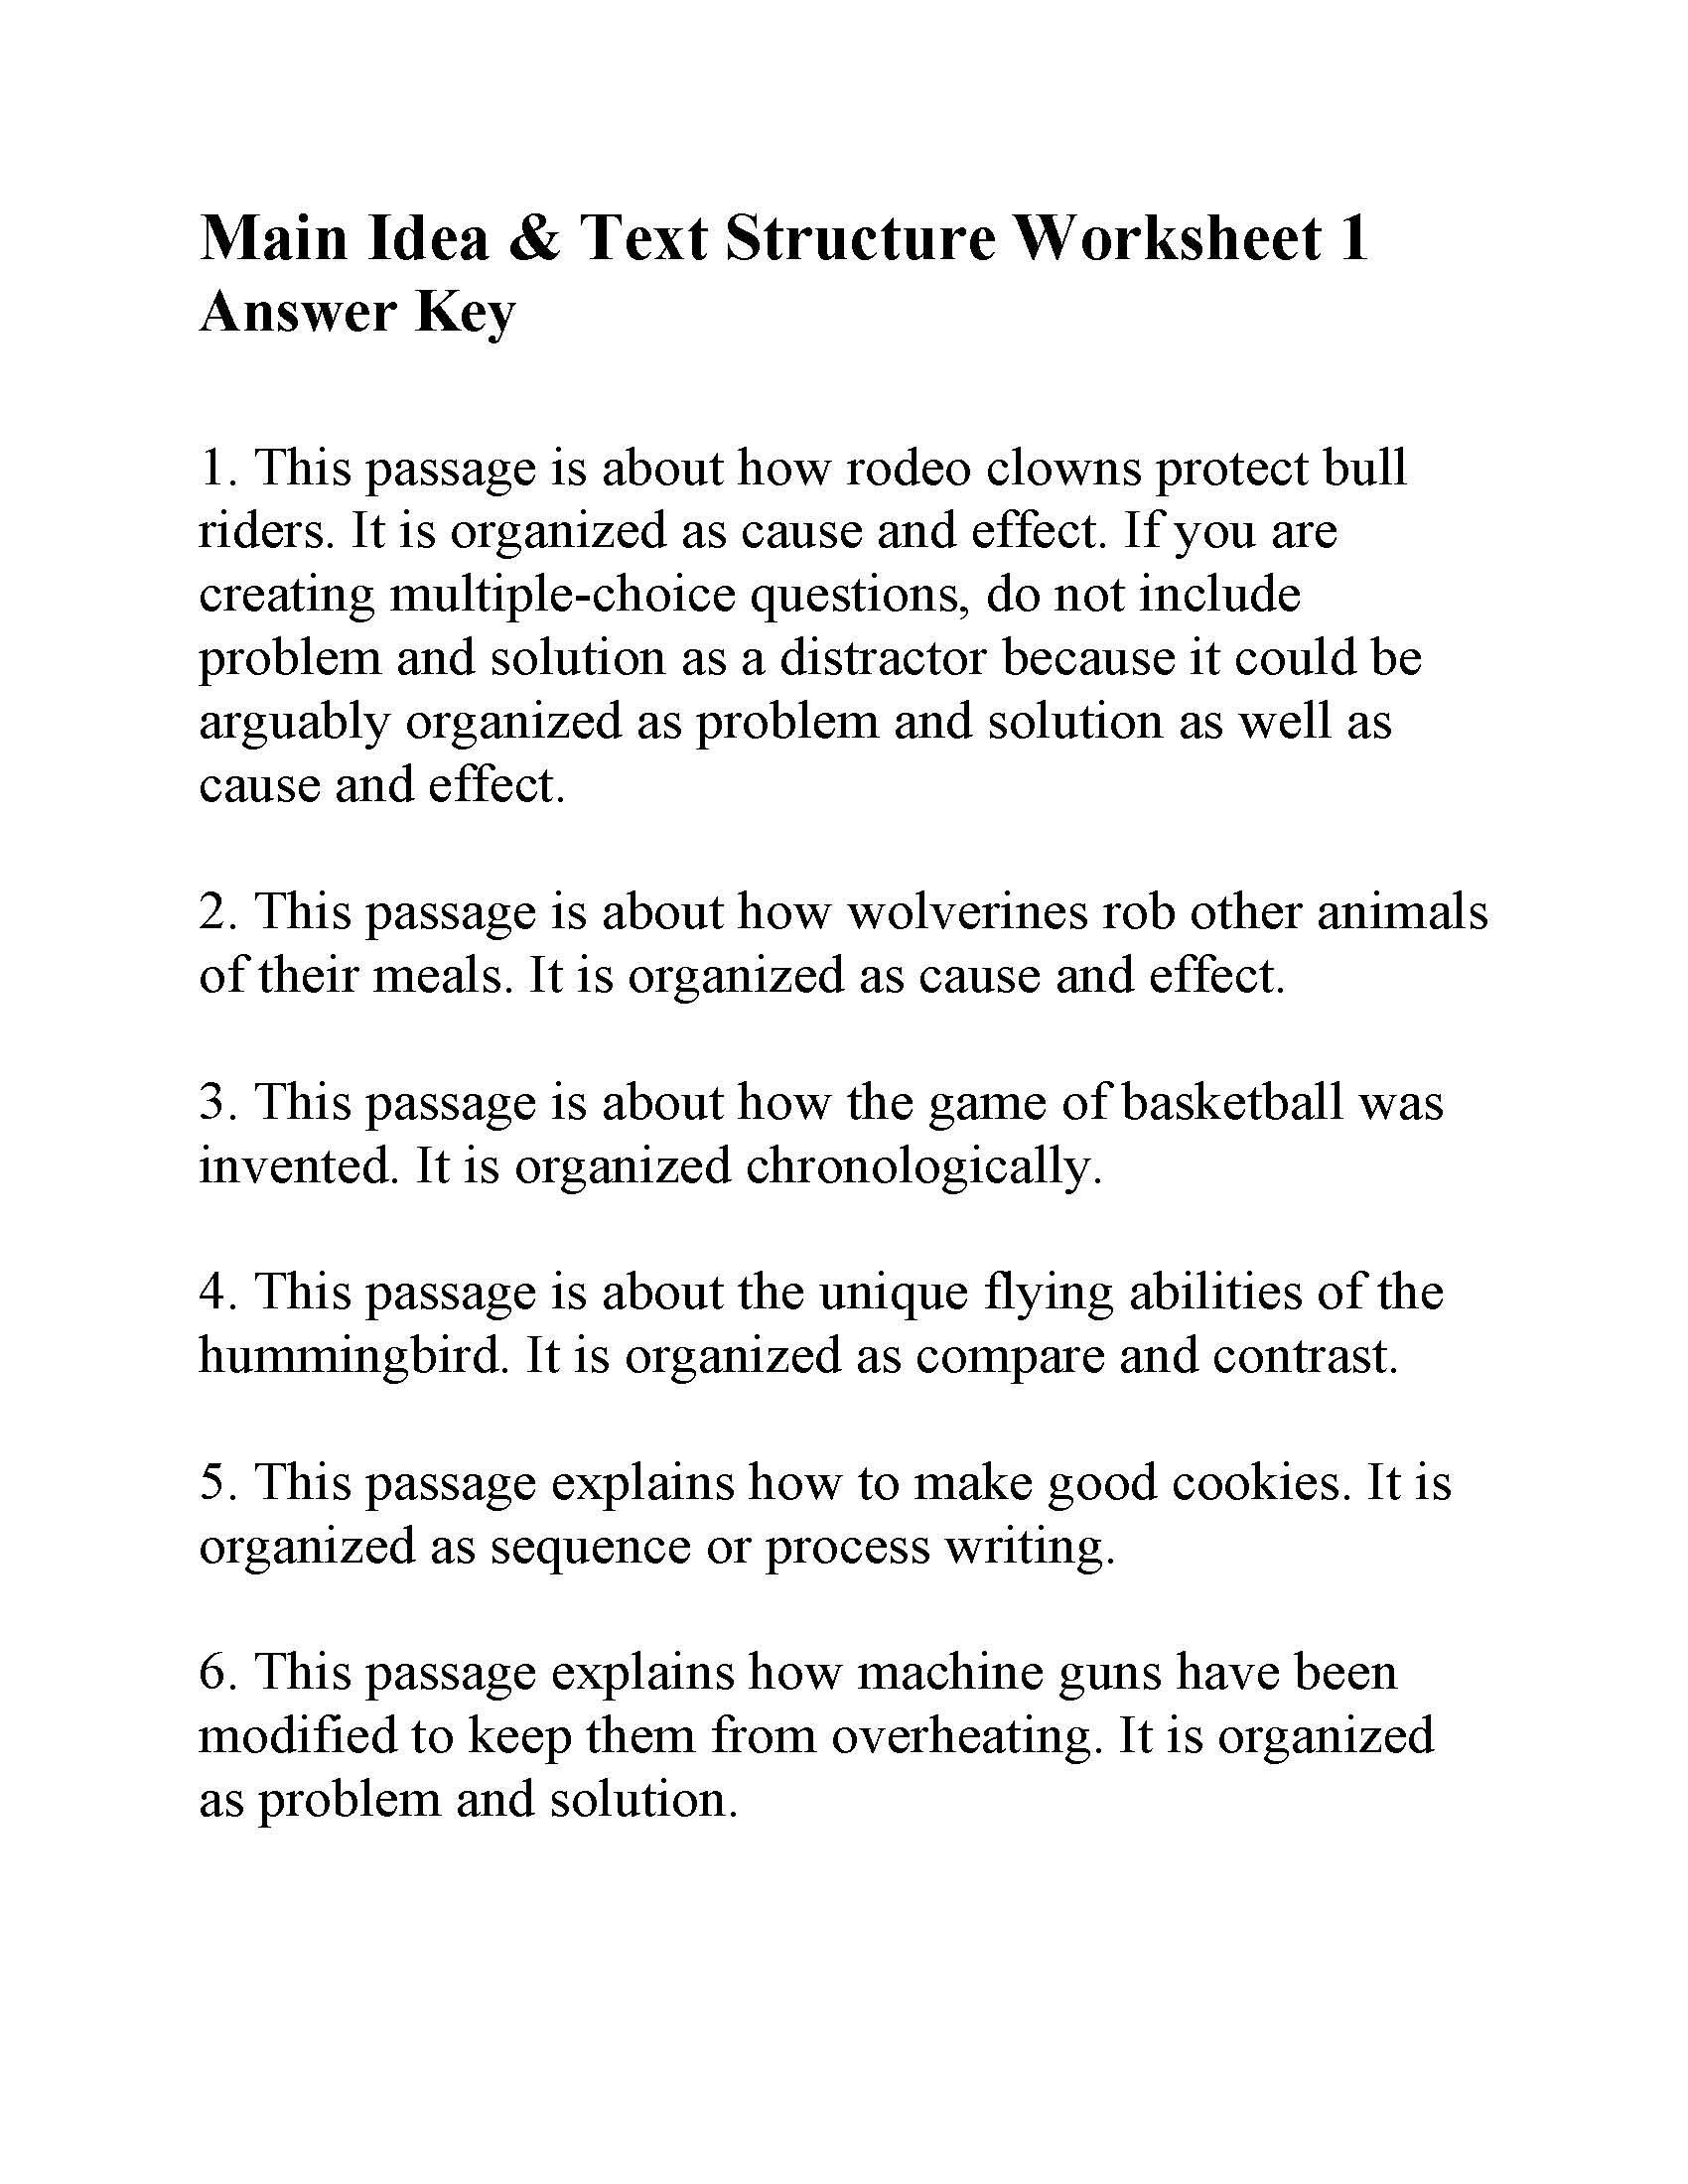 Text Structure Worksheets 3rd Grade This is the Answer Key for the Main Idea and Text Structure